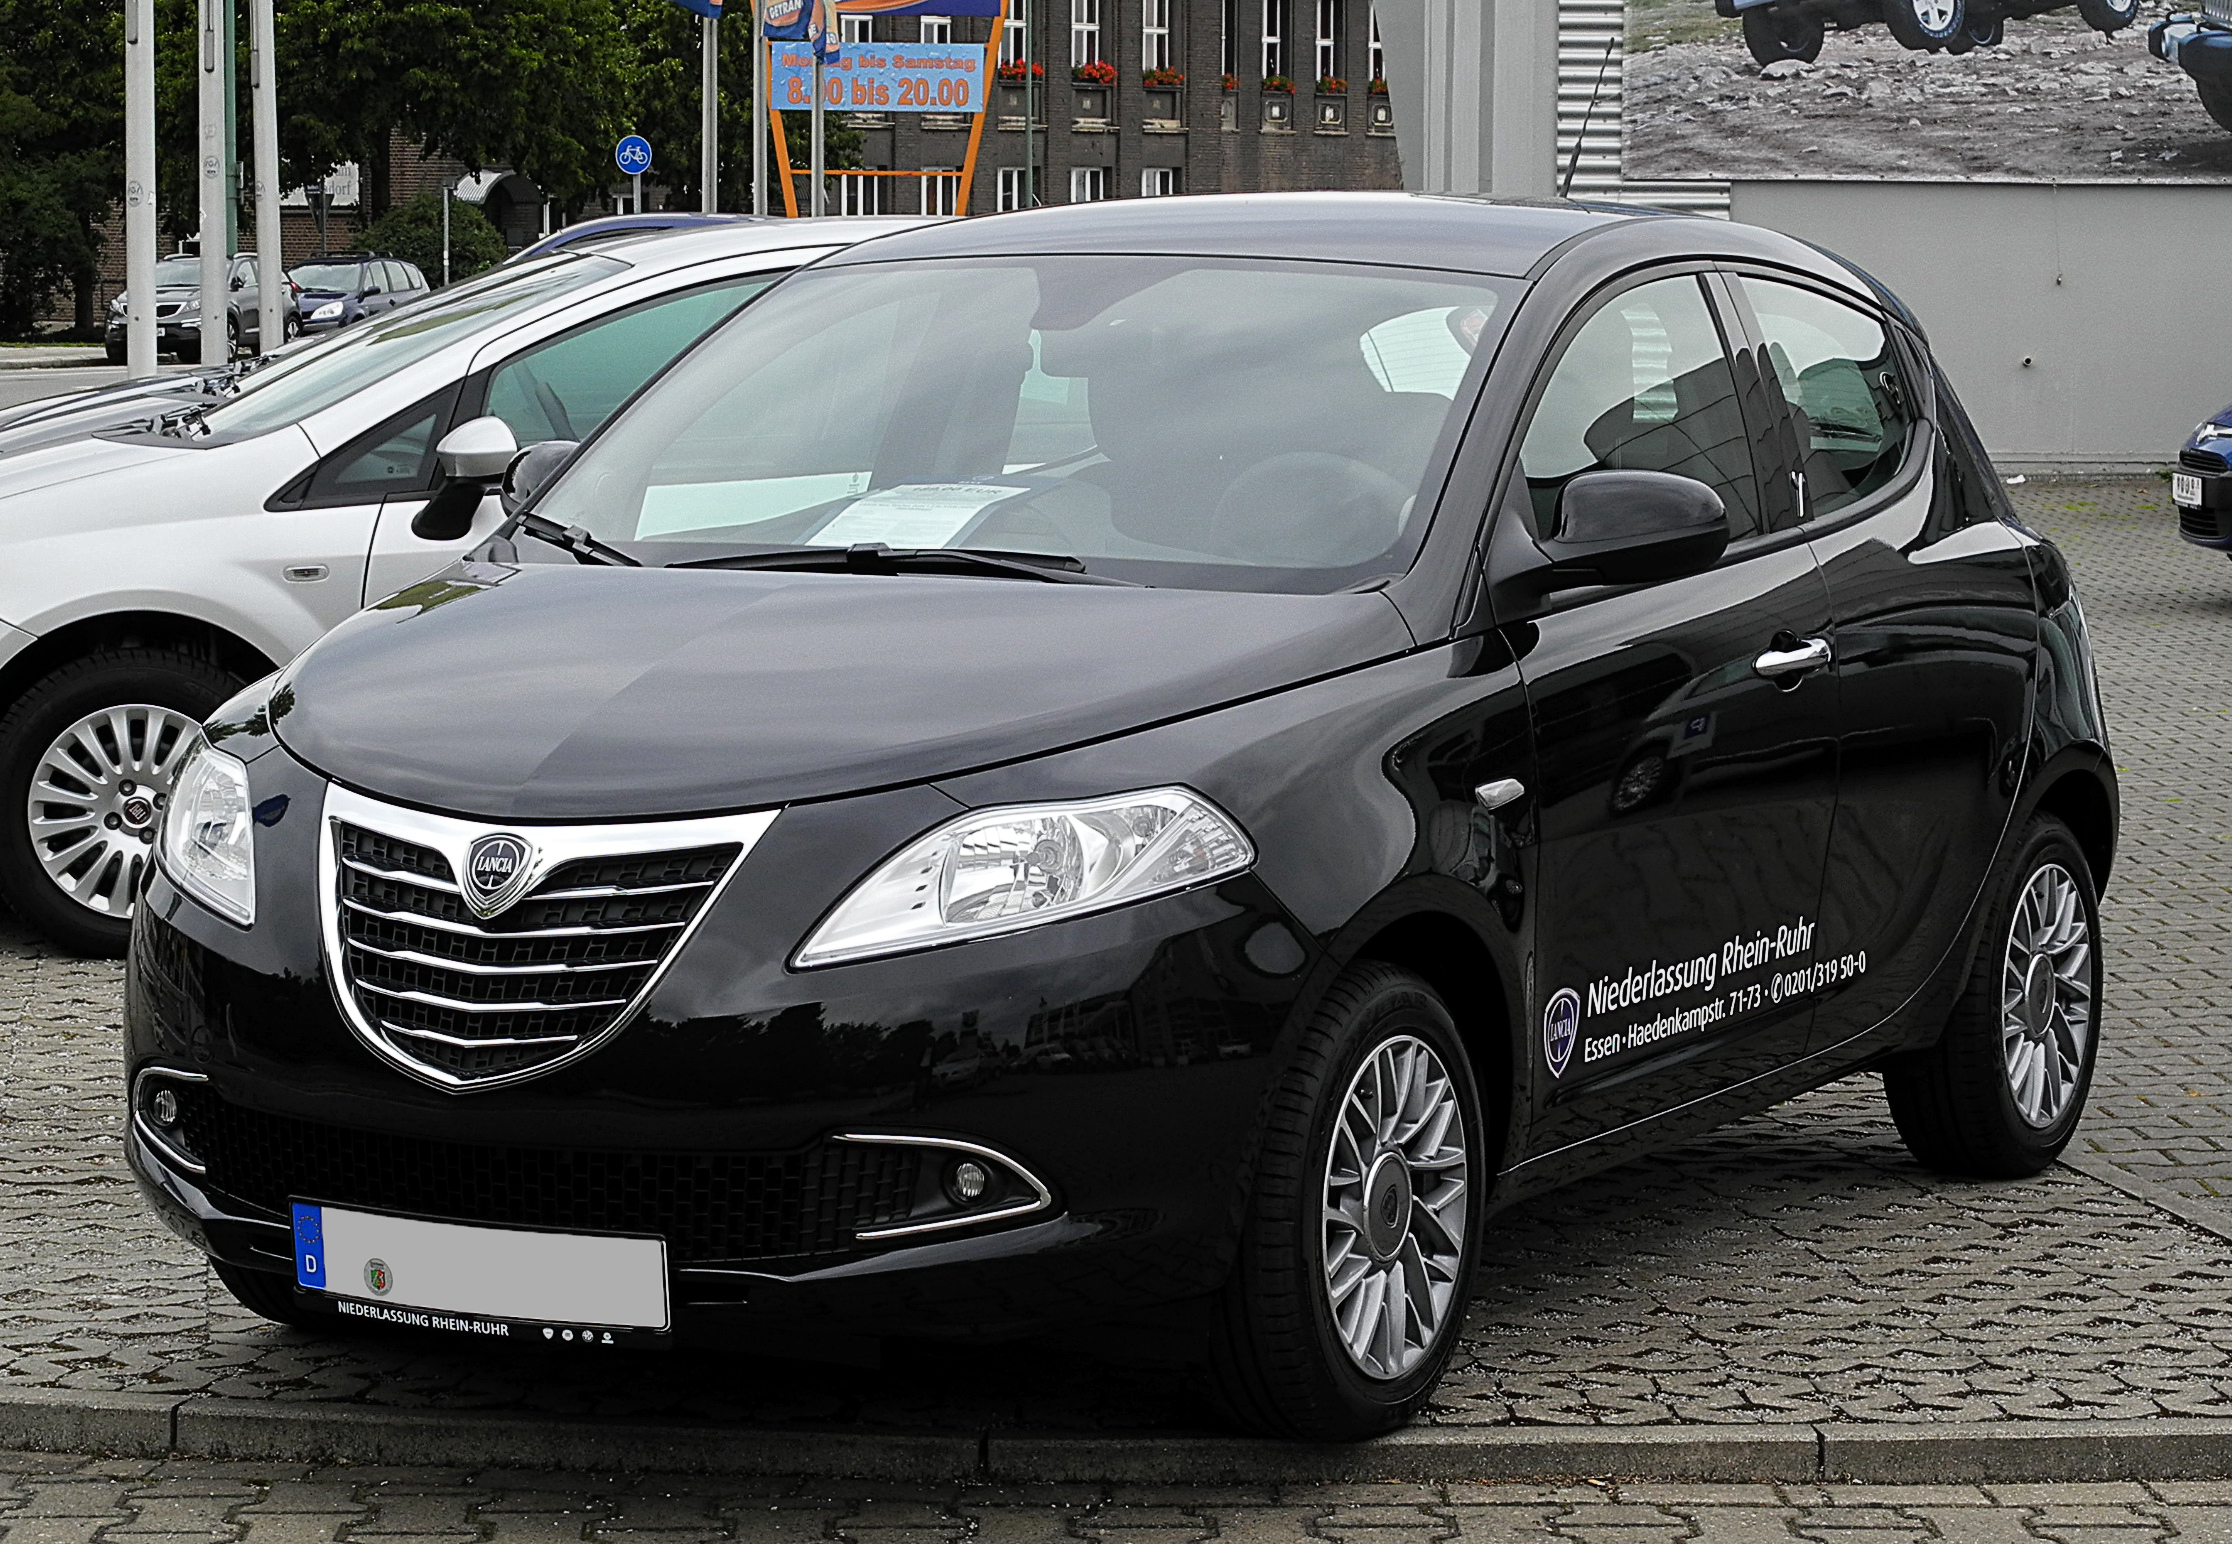 https://upload.wikimedia.org/wikipedia/commons/f/fb/Lancia_Ypsilon_1.2_8V_Gold_%28II%29_%E2%80%93_Frontansicht_%281%29%2C_3._Juli_2011%2C_Essen.jpg